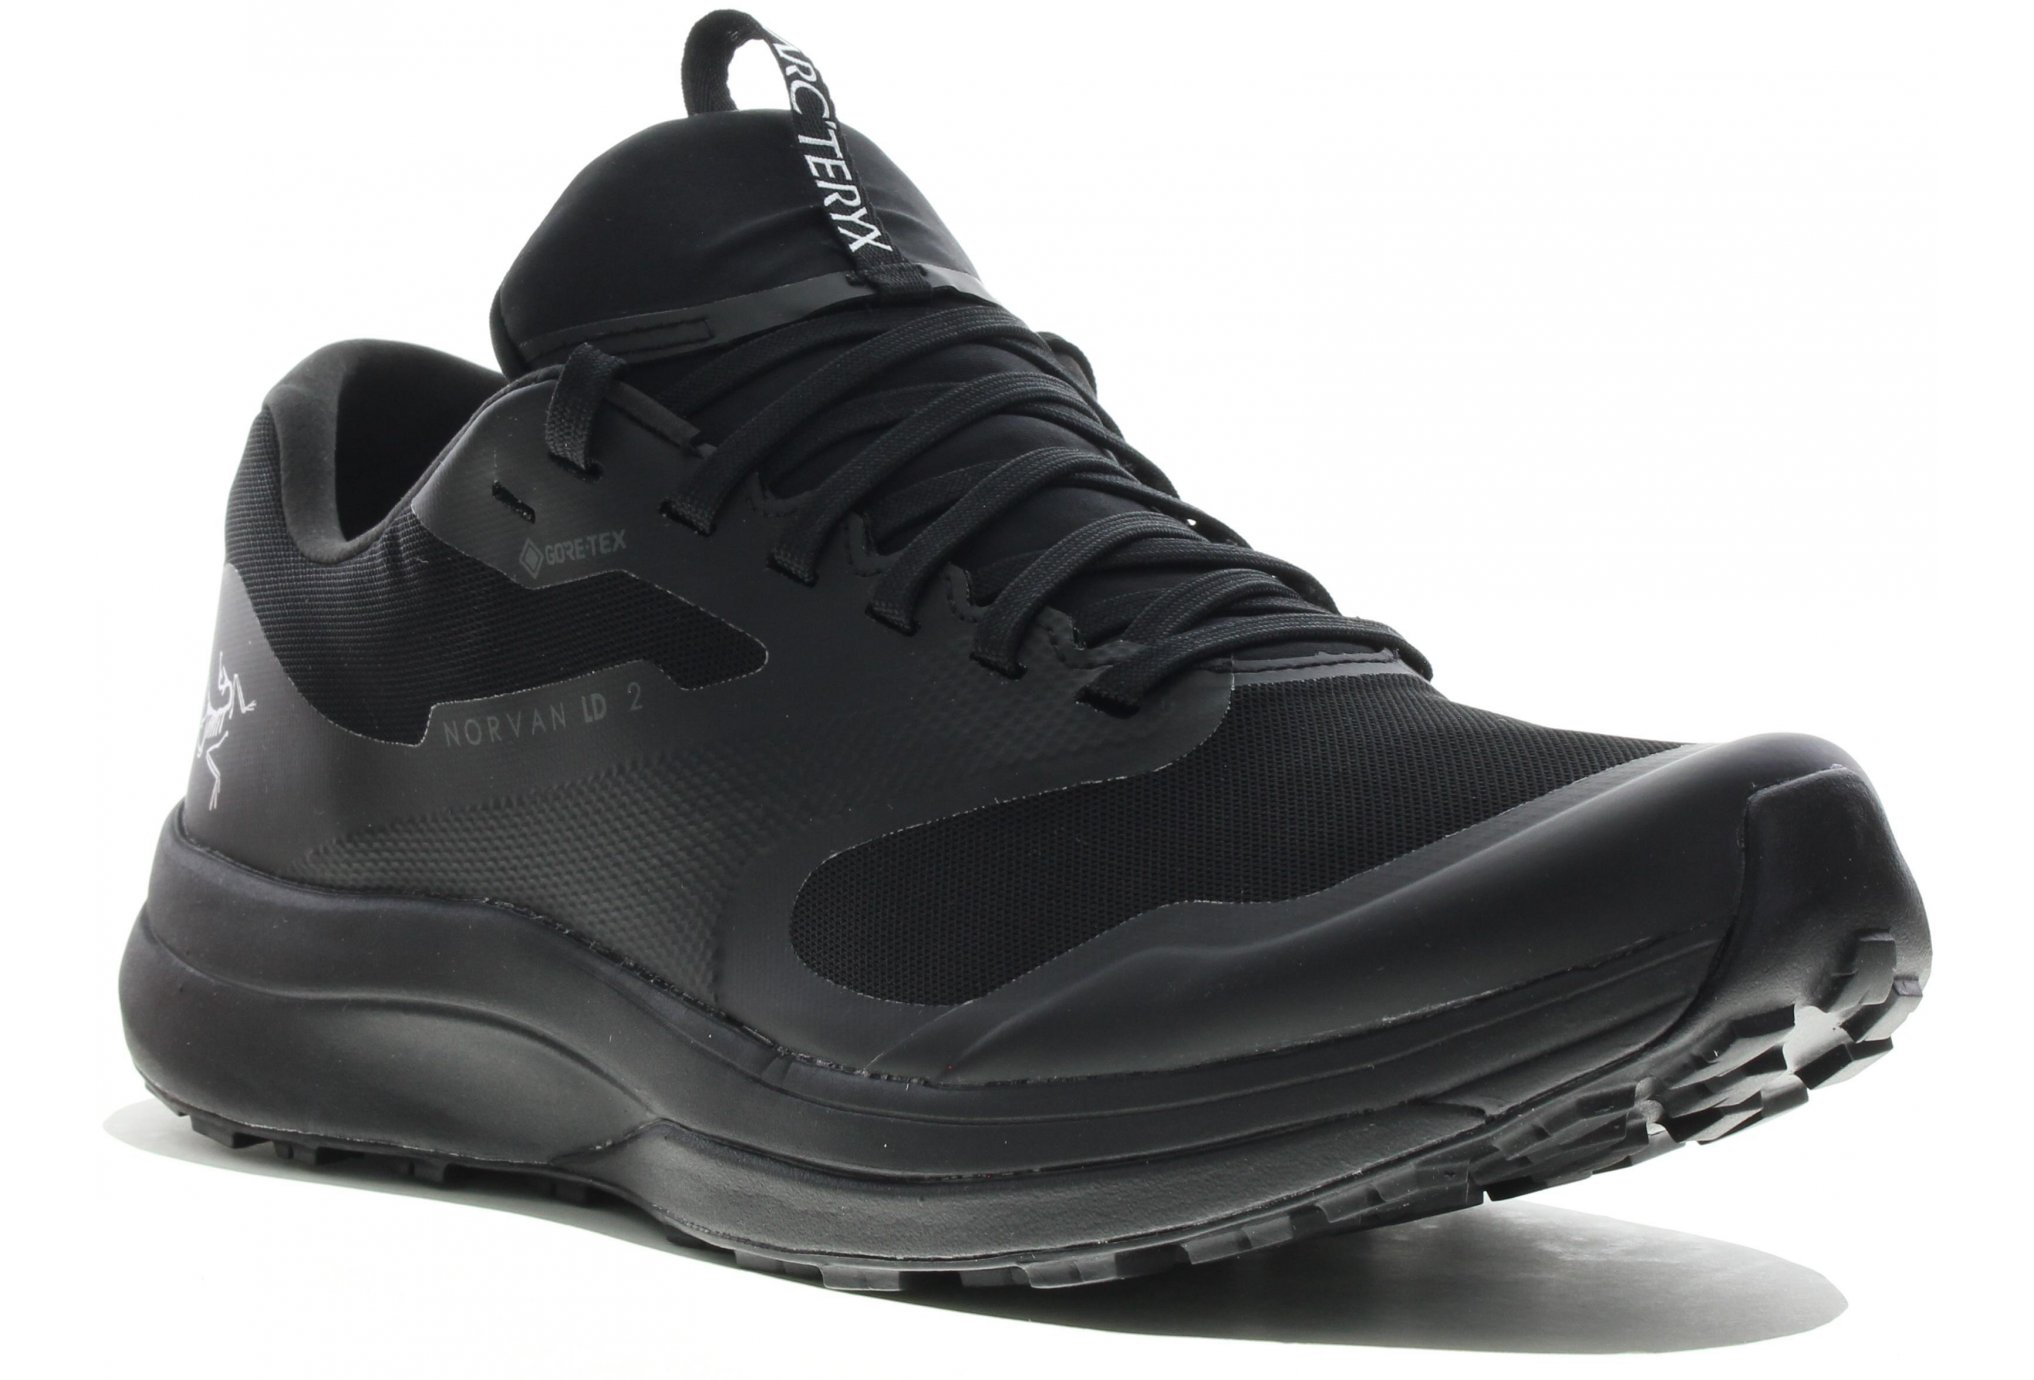 Arcteryx Norvan LD 2 Gore-Tex M Chaussures homme